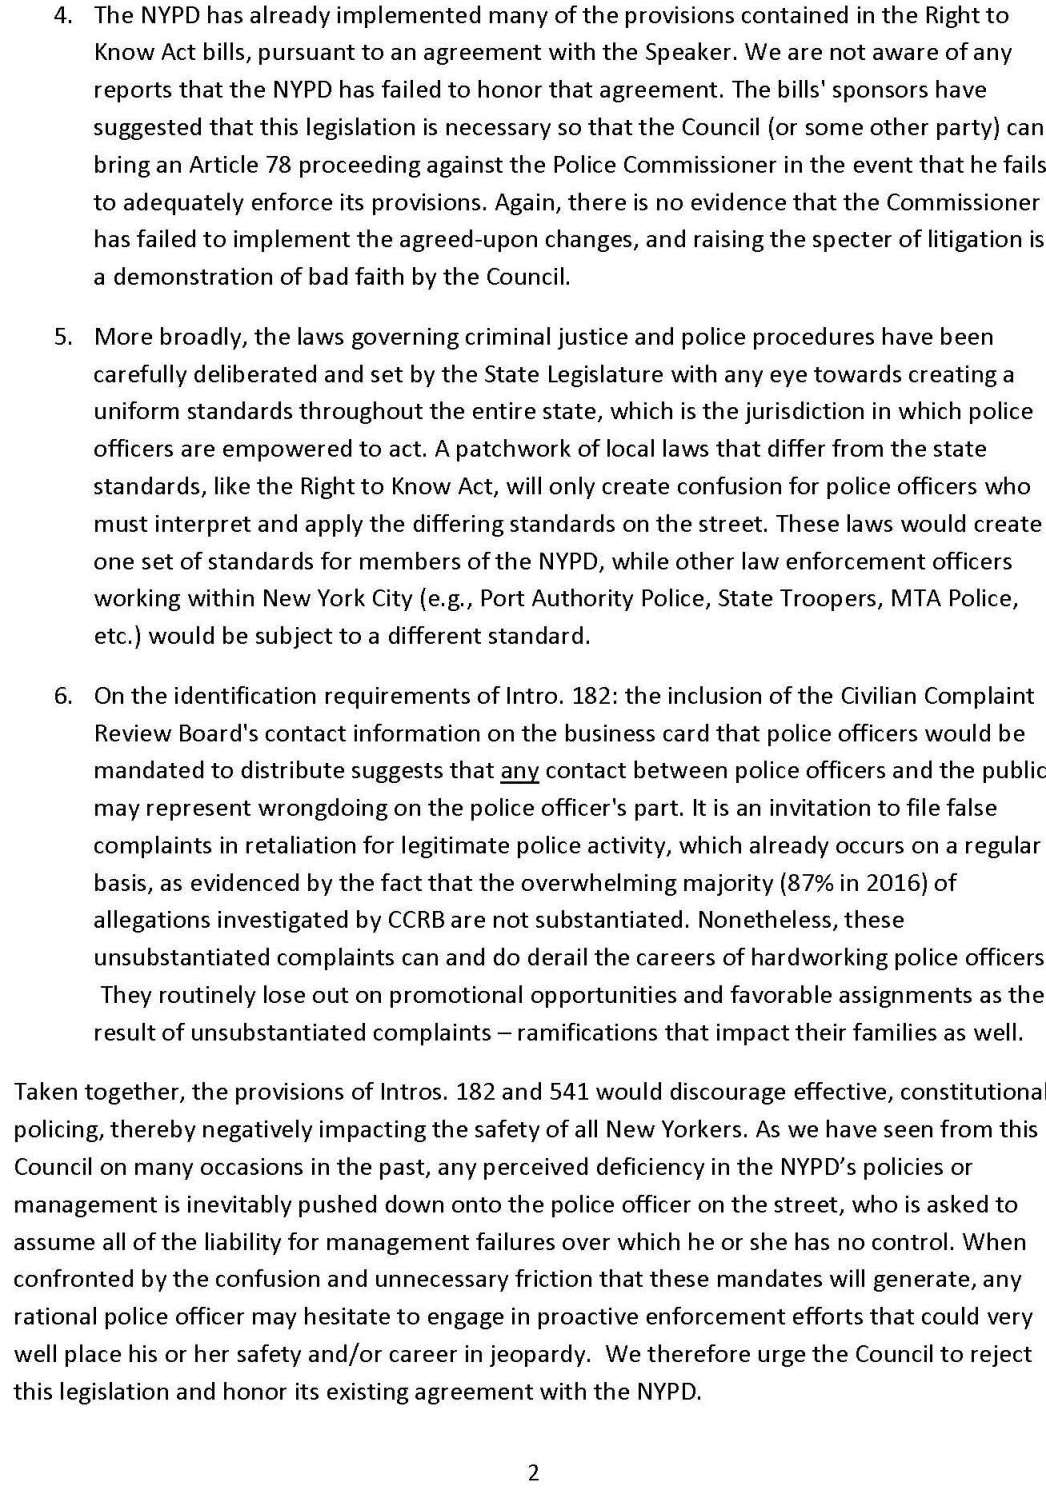 NYC PBA - Right to Know Act - Intro 182 Intro 541_FINAL_Page_2